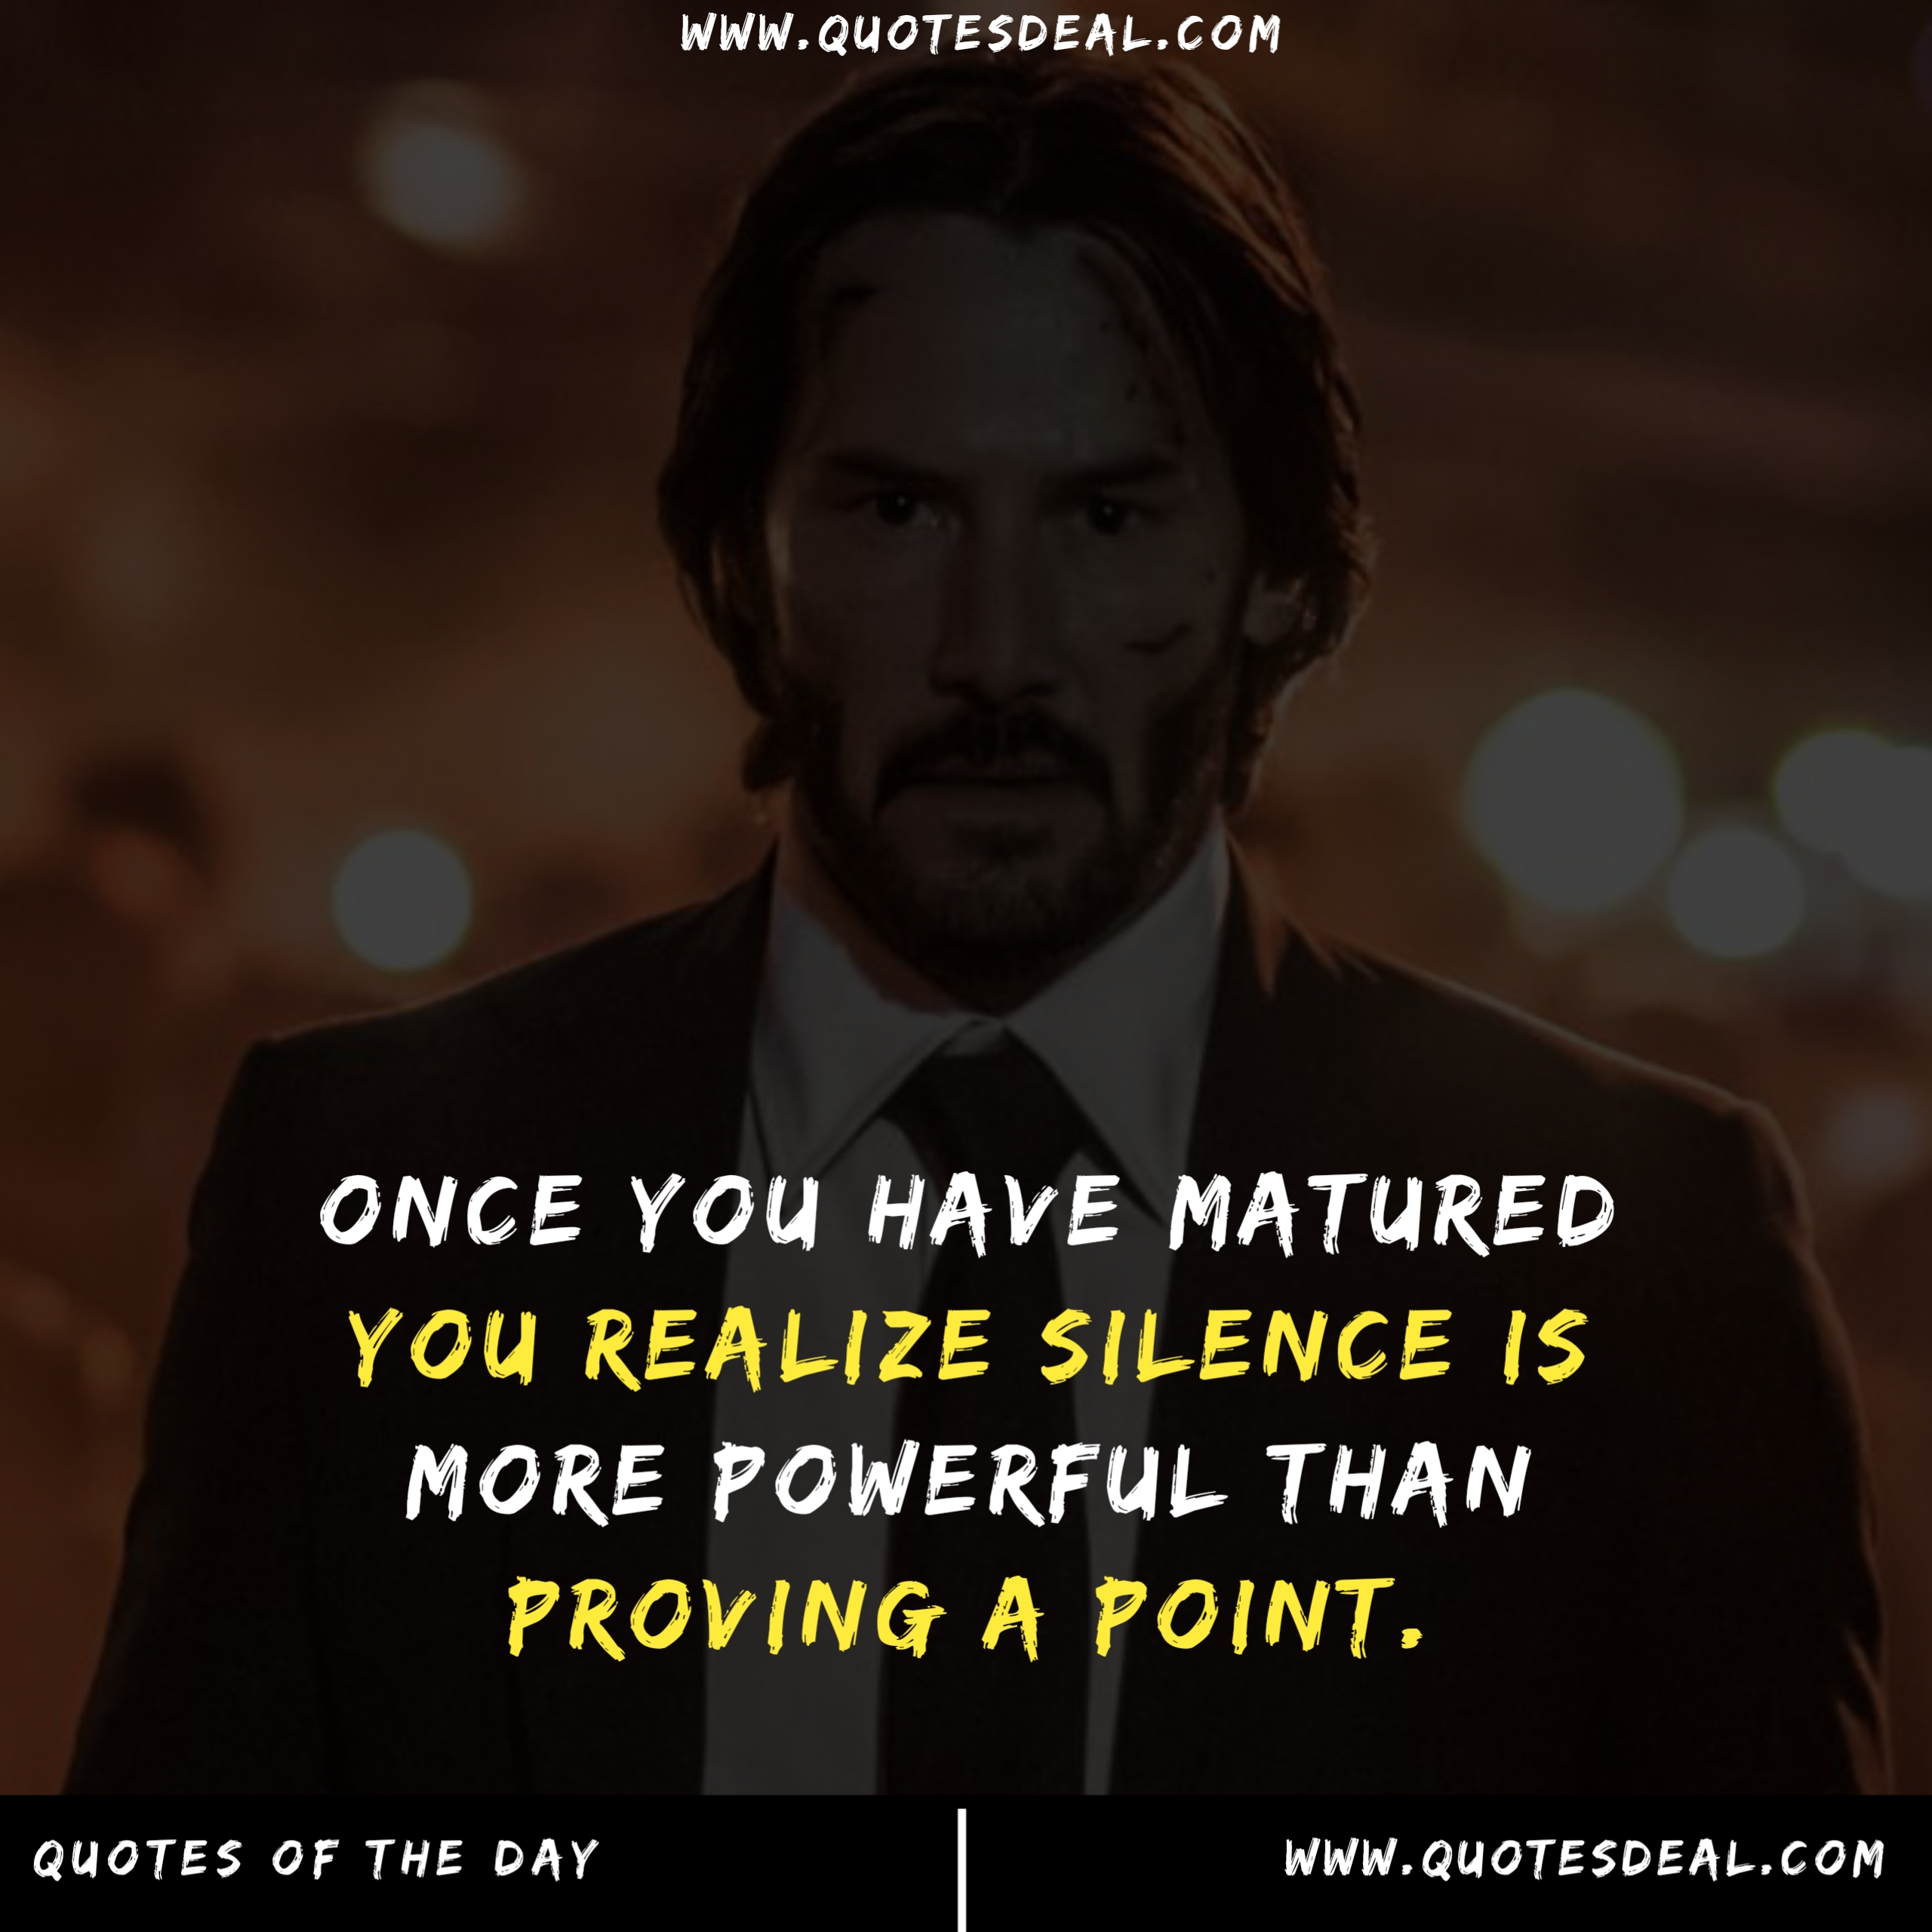 Once you have matured